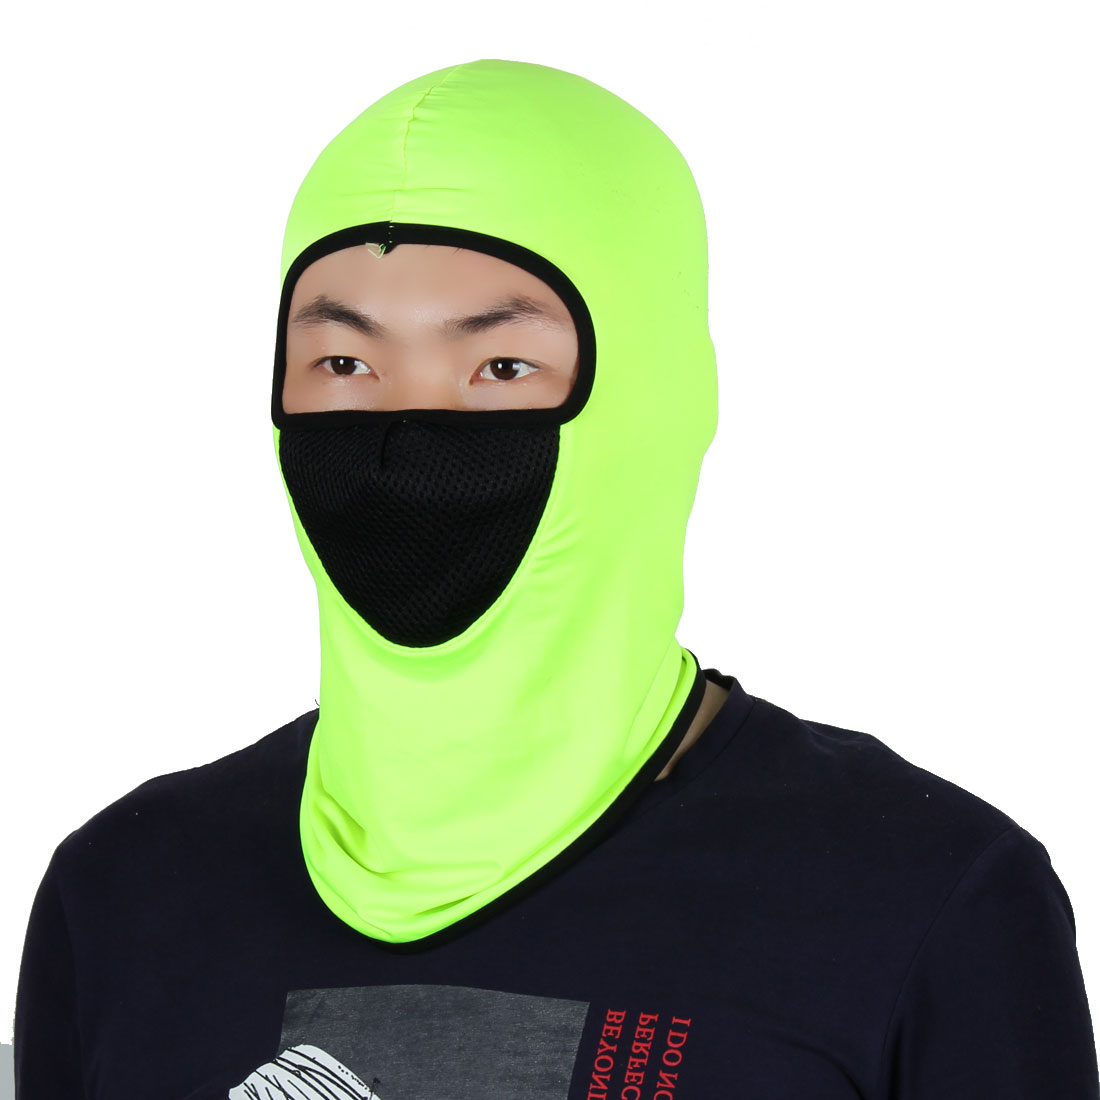 Mask Outdoor Sport Cycling Neck Protector Hat Helmet Balaclava Fluorescent Green by Unique-Bargains